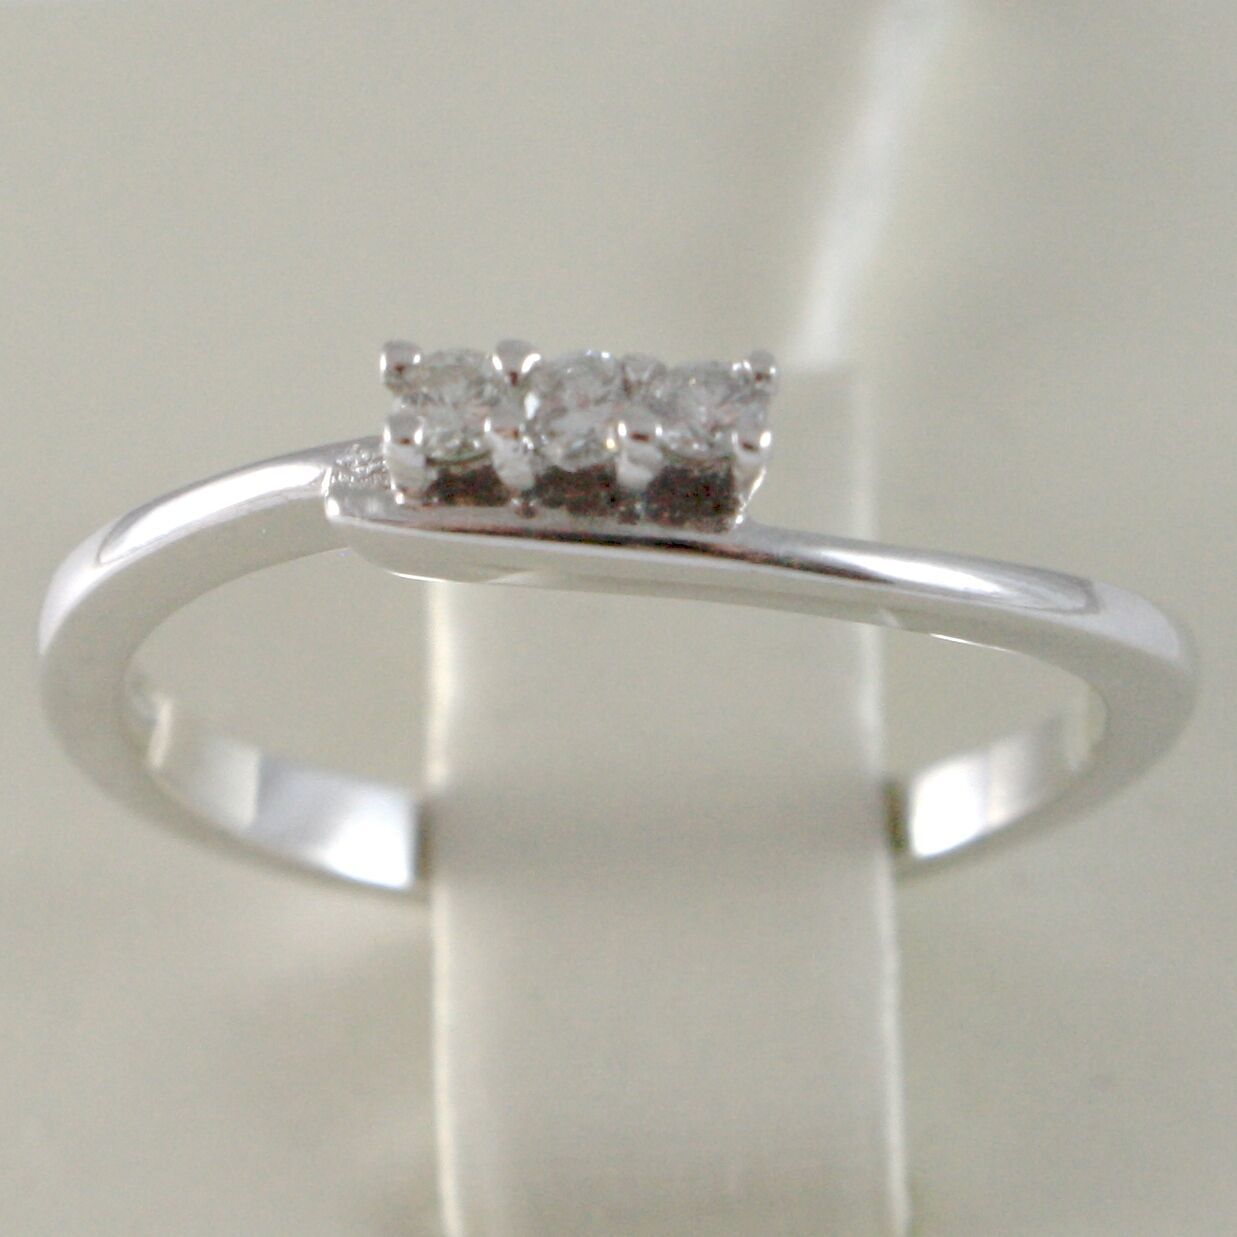 BAGUE EN OR BLANC 750 18K, TRILOGY, 3 DIAMANTS CARAT EN TOUT 0.08, AVEC LA VAGUE